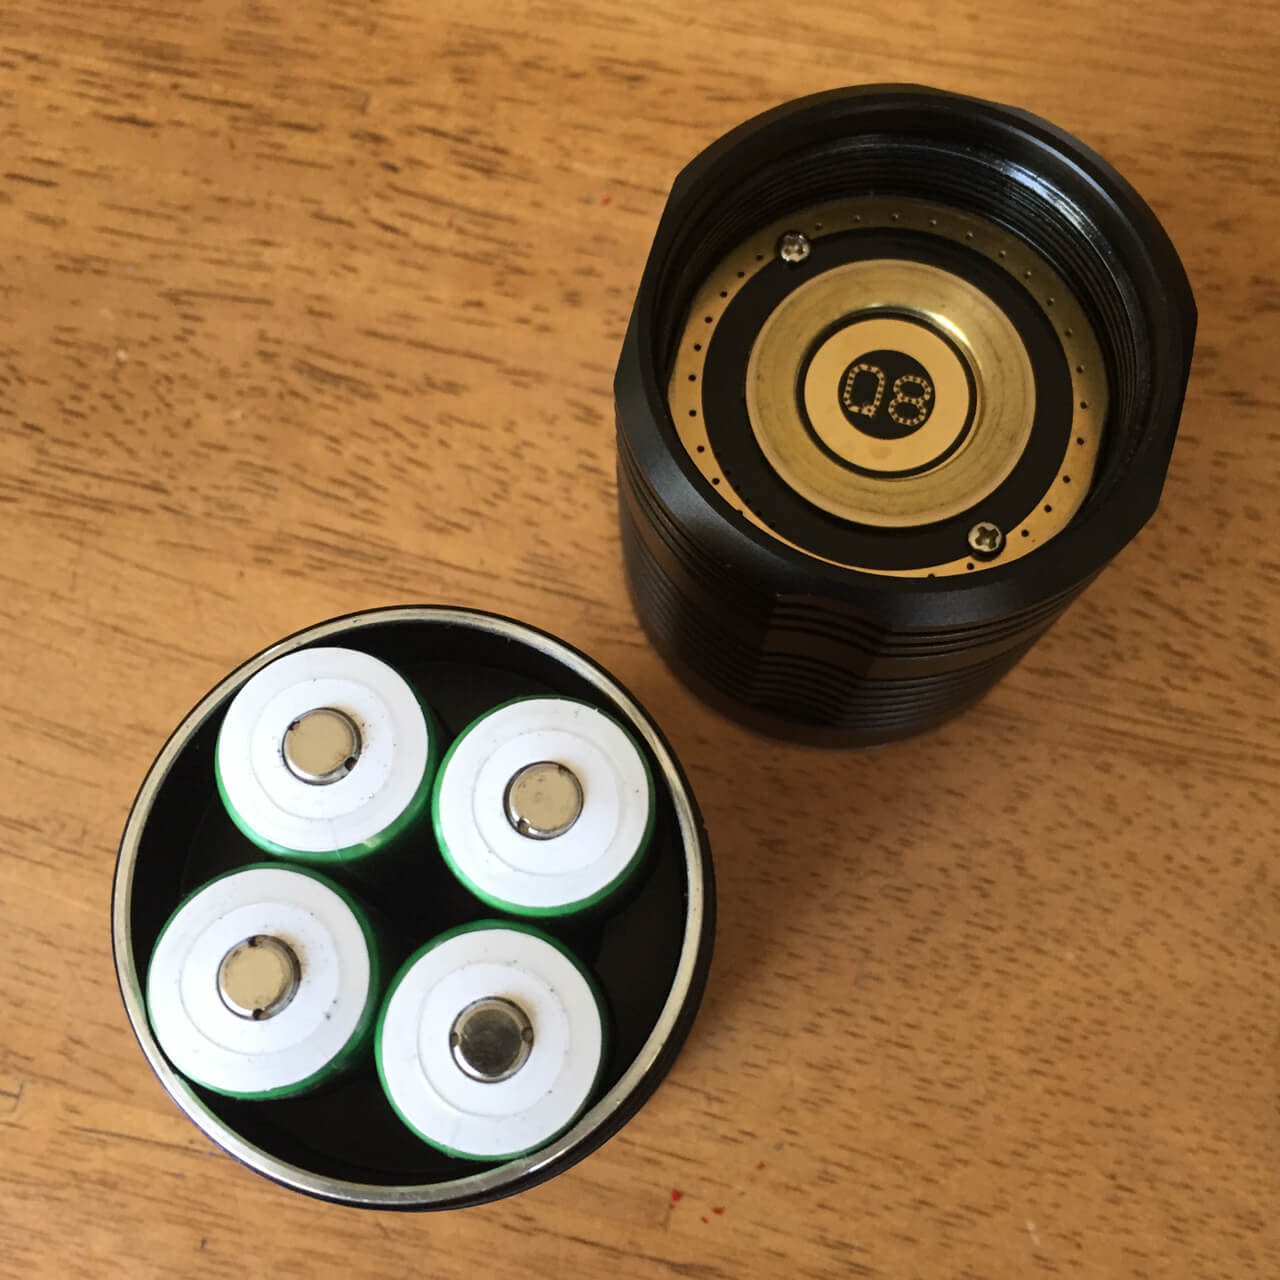 Button top unprotected batteries